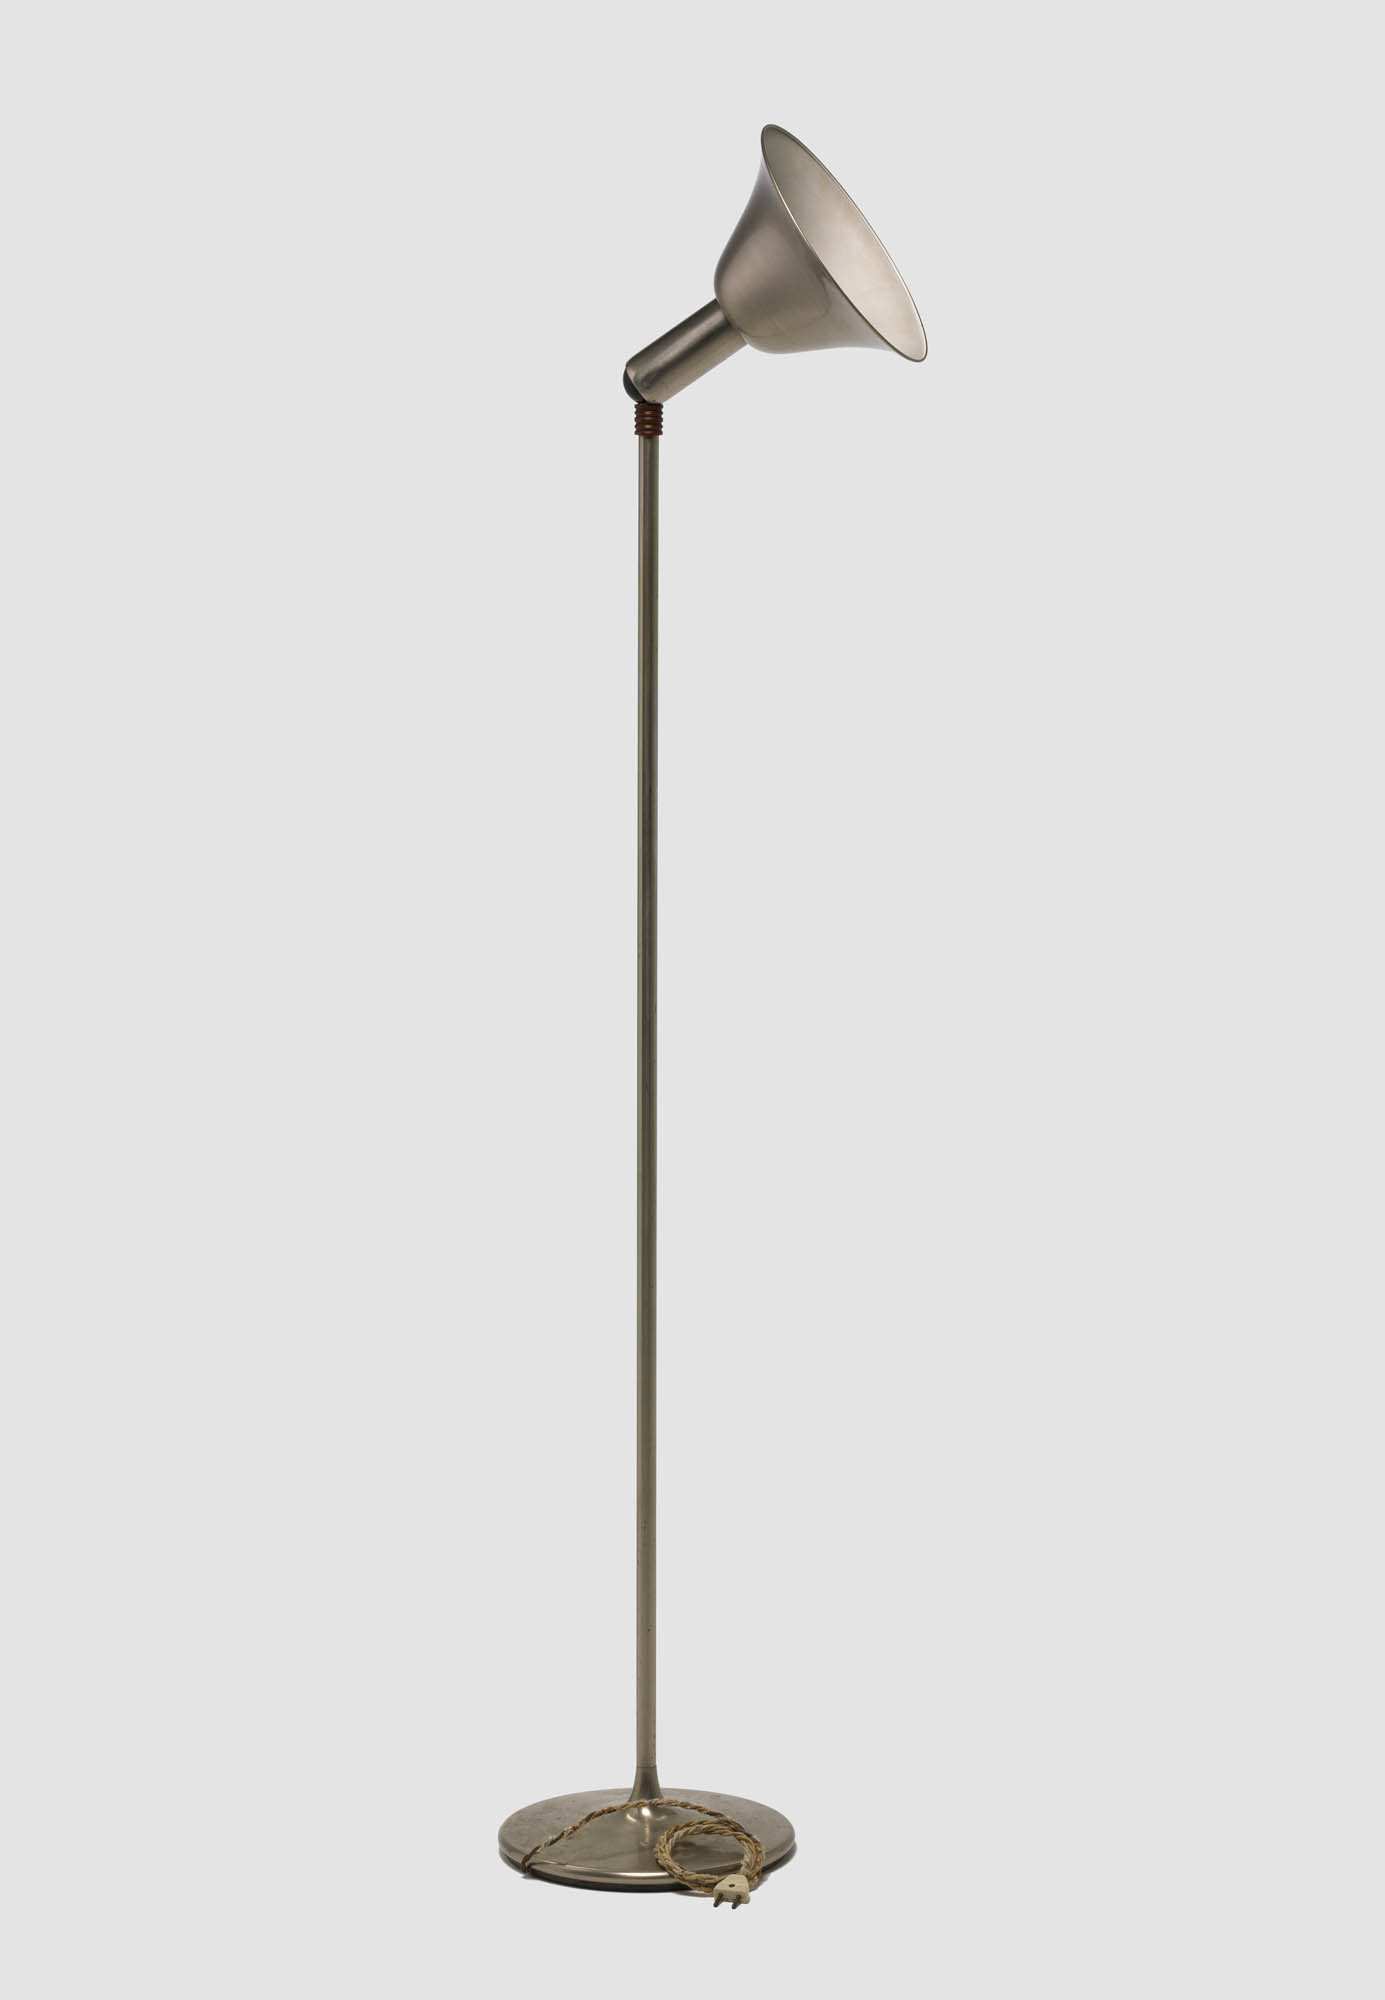 Verstellbare Indirektleuchte, Modell 4.344 Sigfried Giedion Table lamp